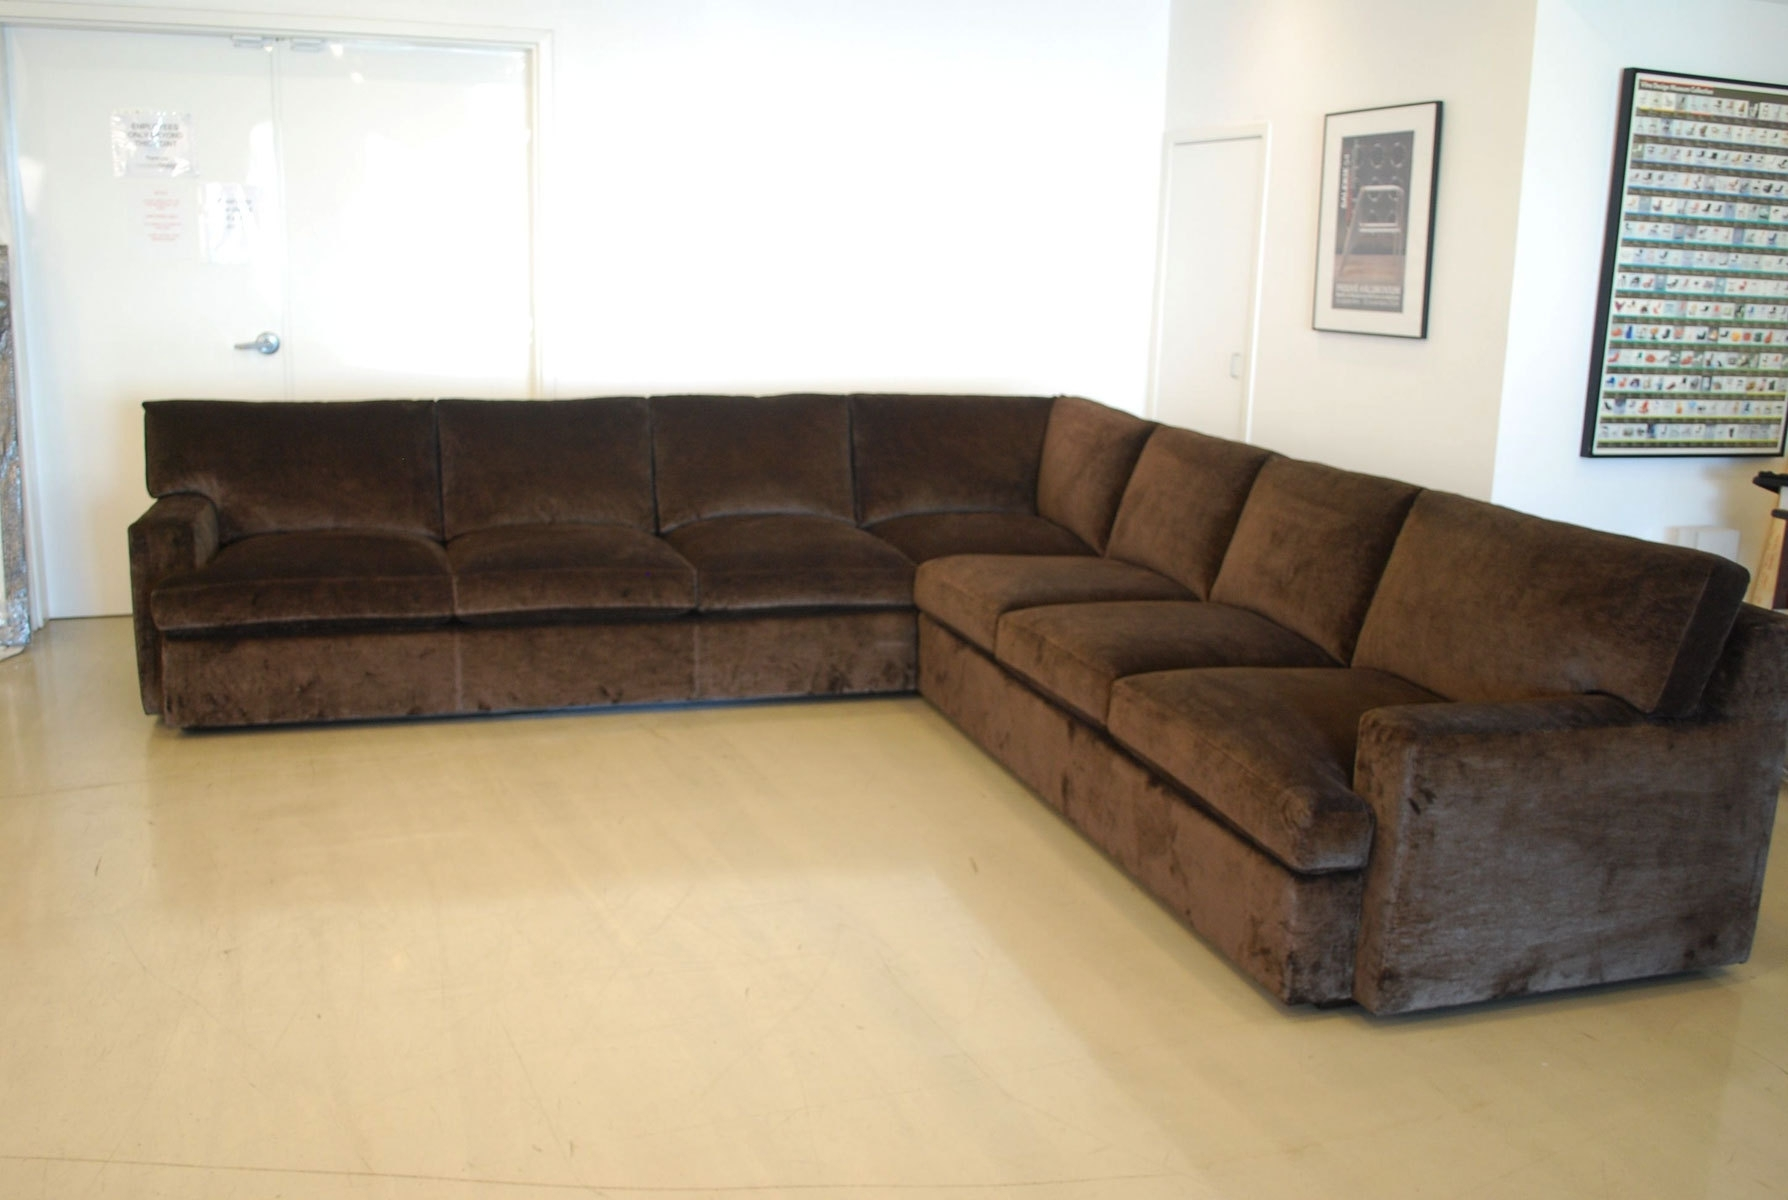 Amusing Large L Shaped Sectional Sofas 99 On The Brick Sofa Bed throughout Sectional Sofas at the Brick (Image 1 of 15)